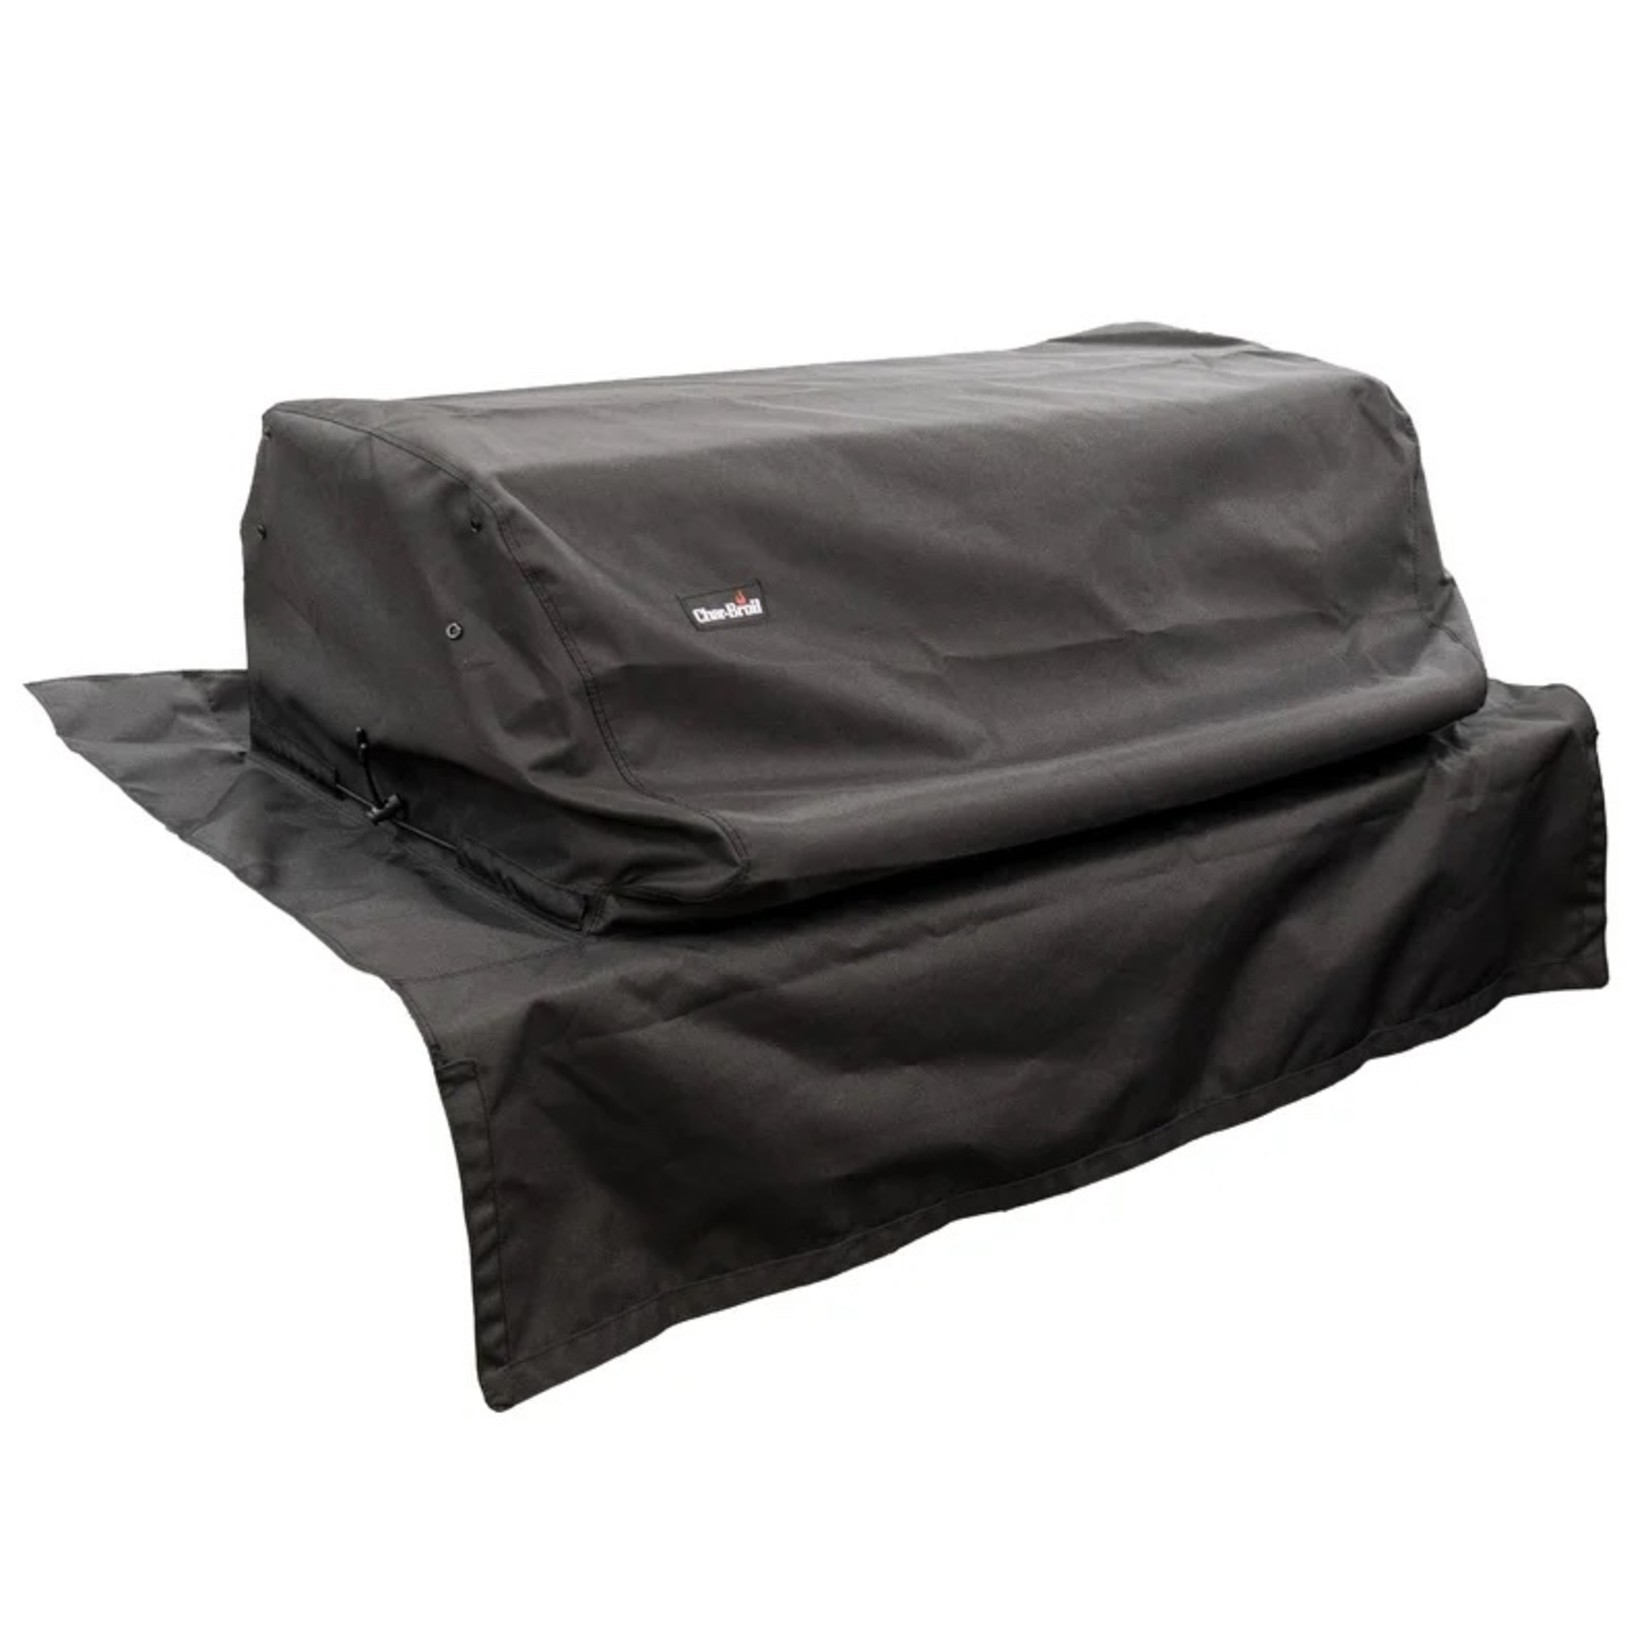 """*Medallion Series 5-Burner Built-in Grill Cover - Fits up to 36"""""""